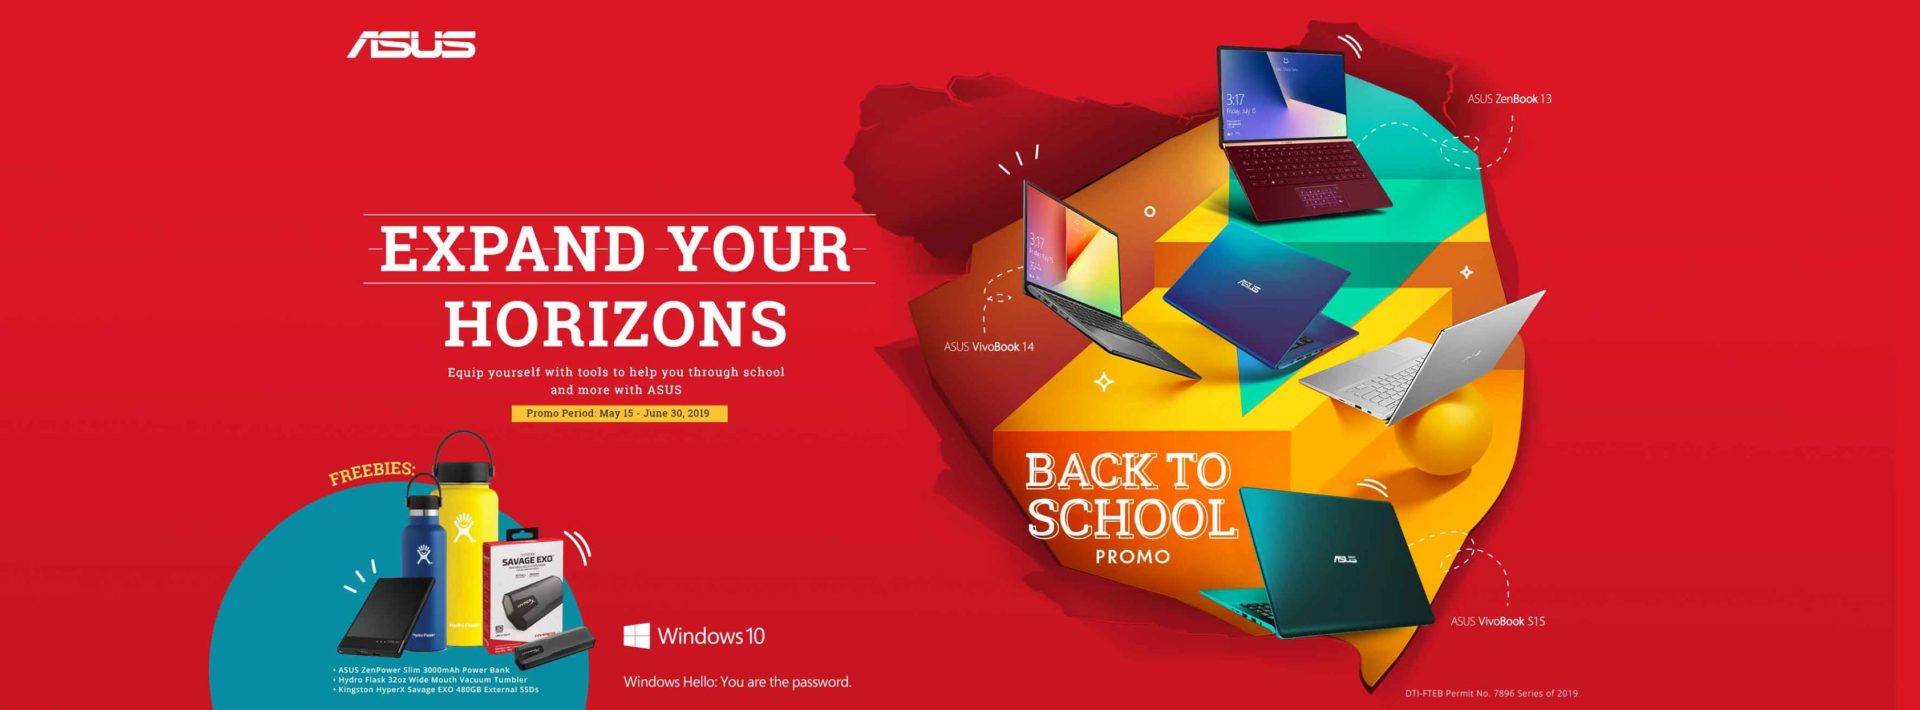 asus back to school promo, ASUS Announces its Back to School Deals!, Gadget Pilipinas